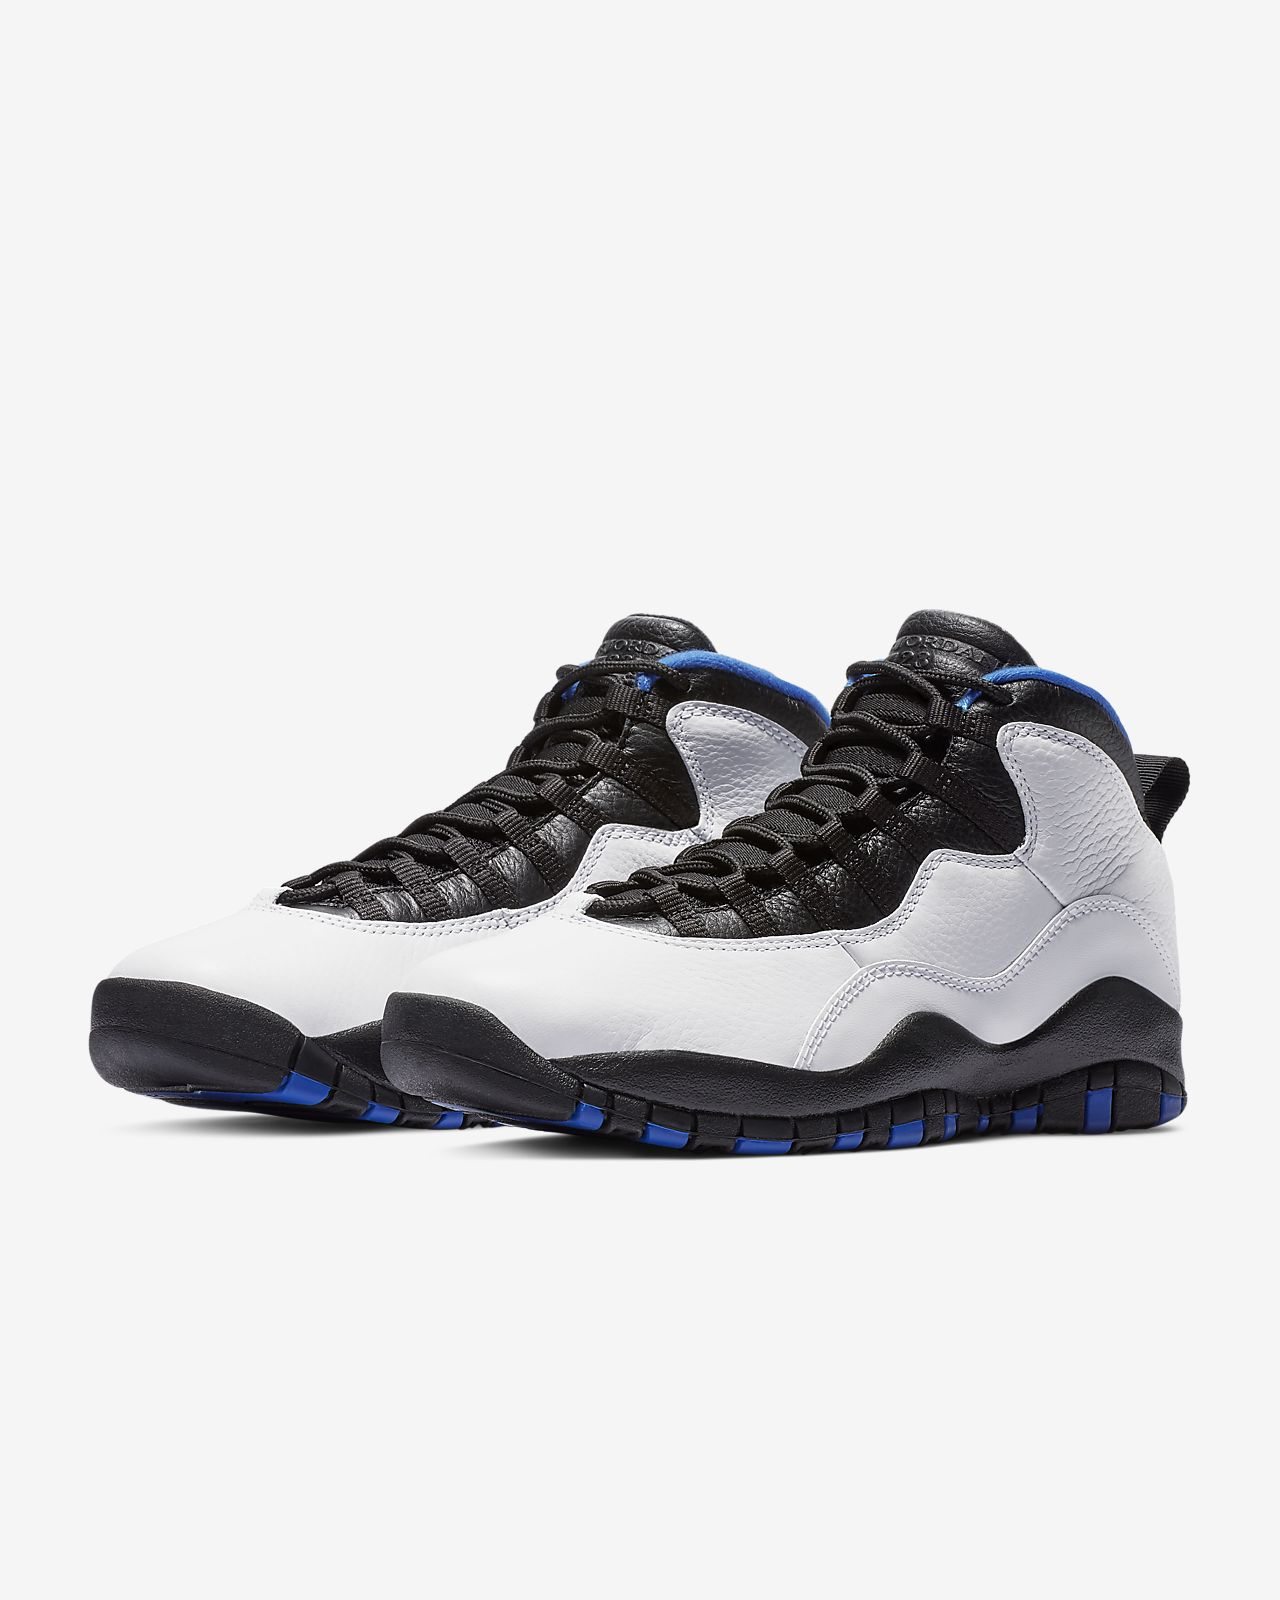 2a58679c5a76 Air Jordan 10 Retro Men s Shoe. Nike.com SG